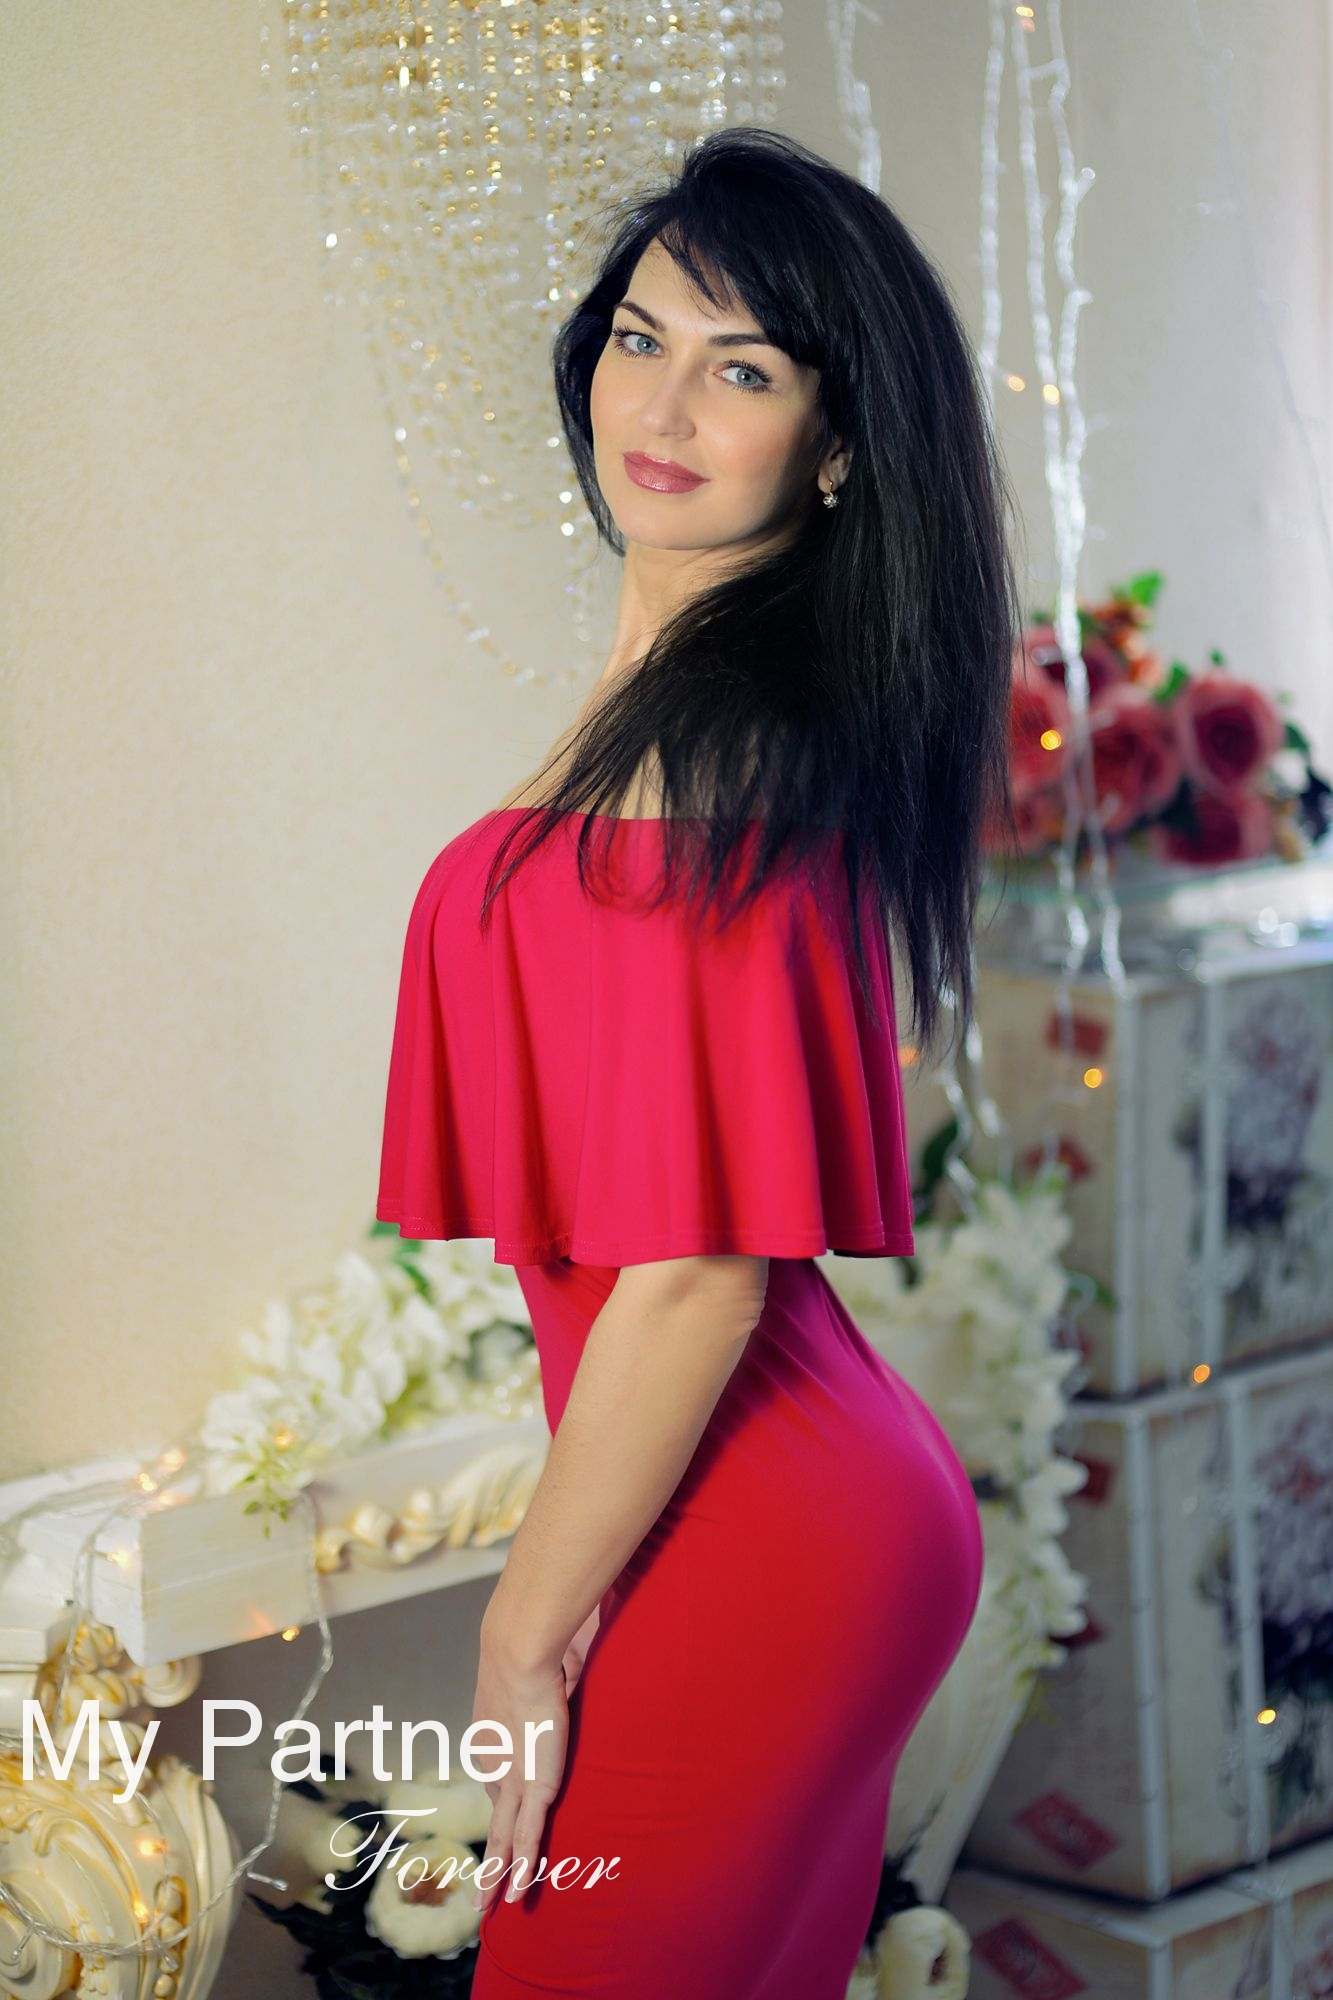 International Matchmaking to Meet Nataliya from Kharkov, Ukraine